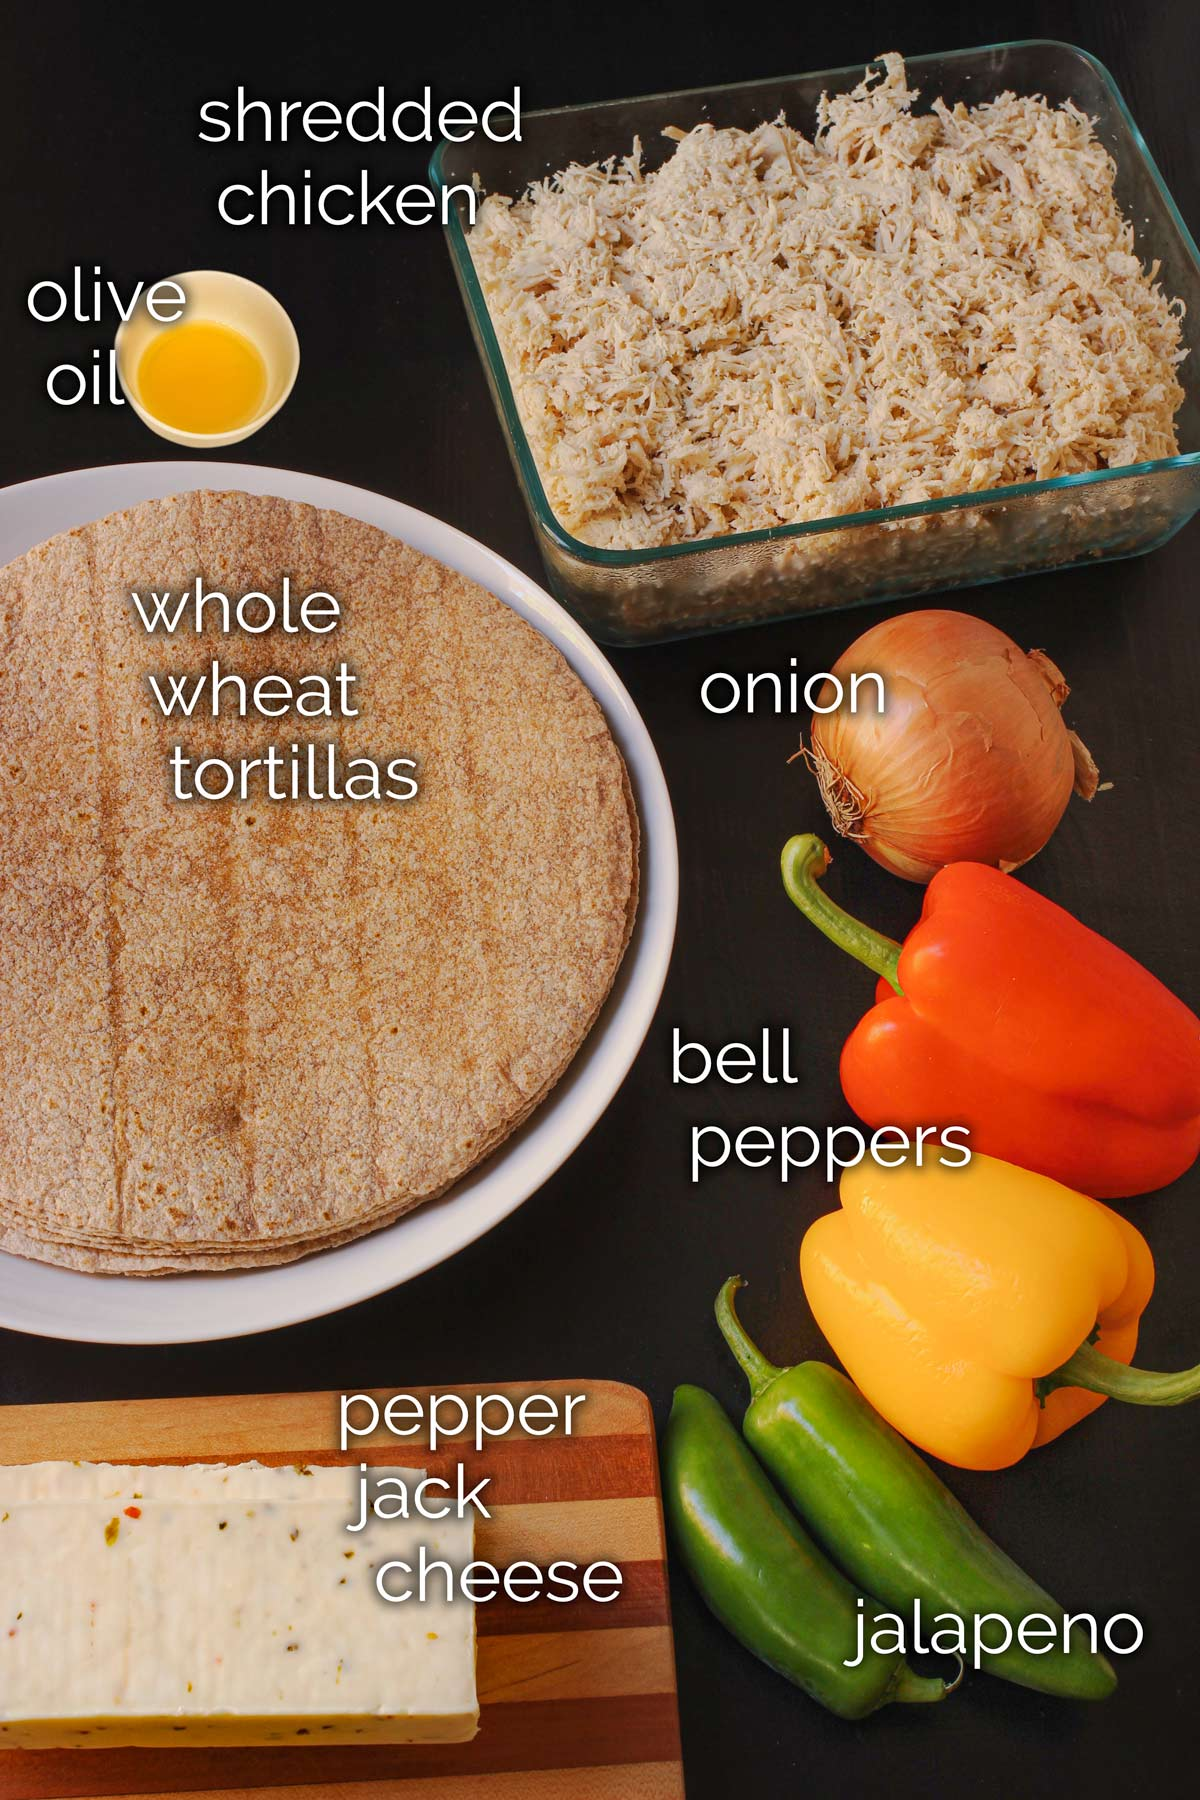 ingredients for chicken fajita burritos laid out on table top.